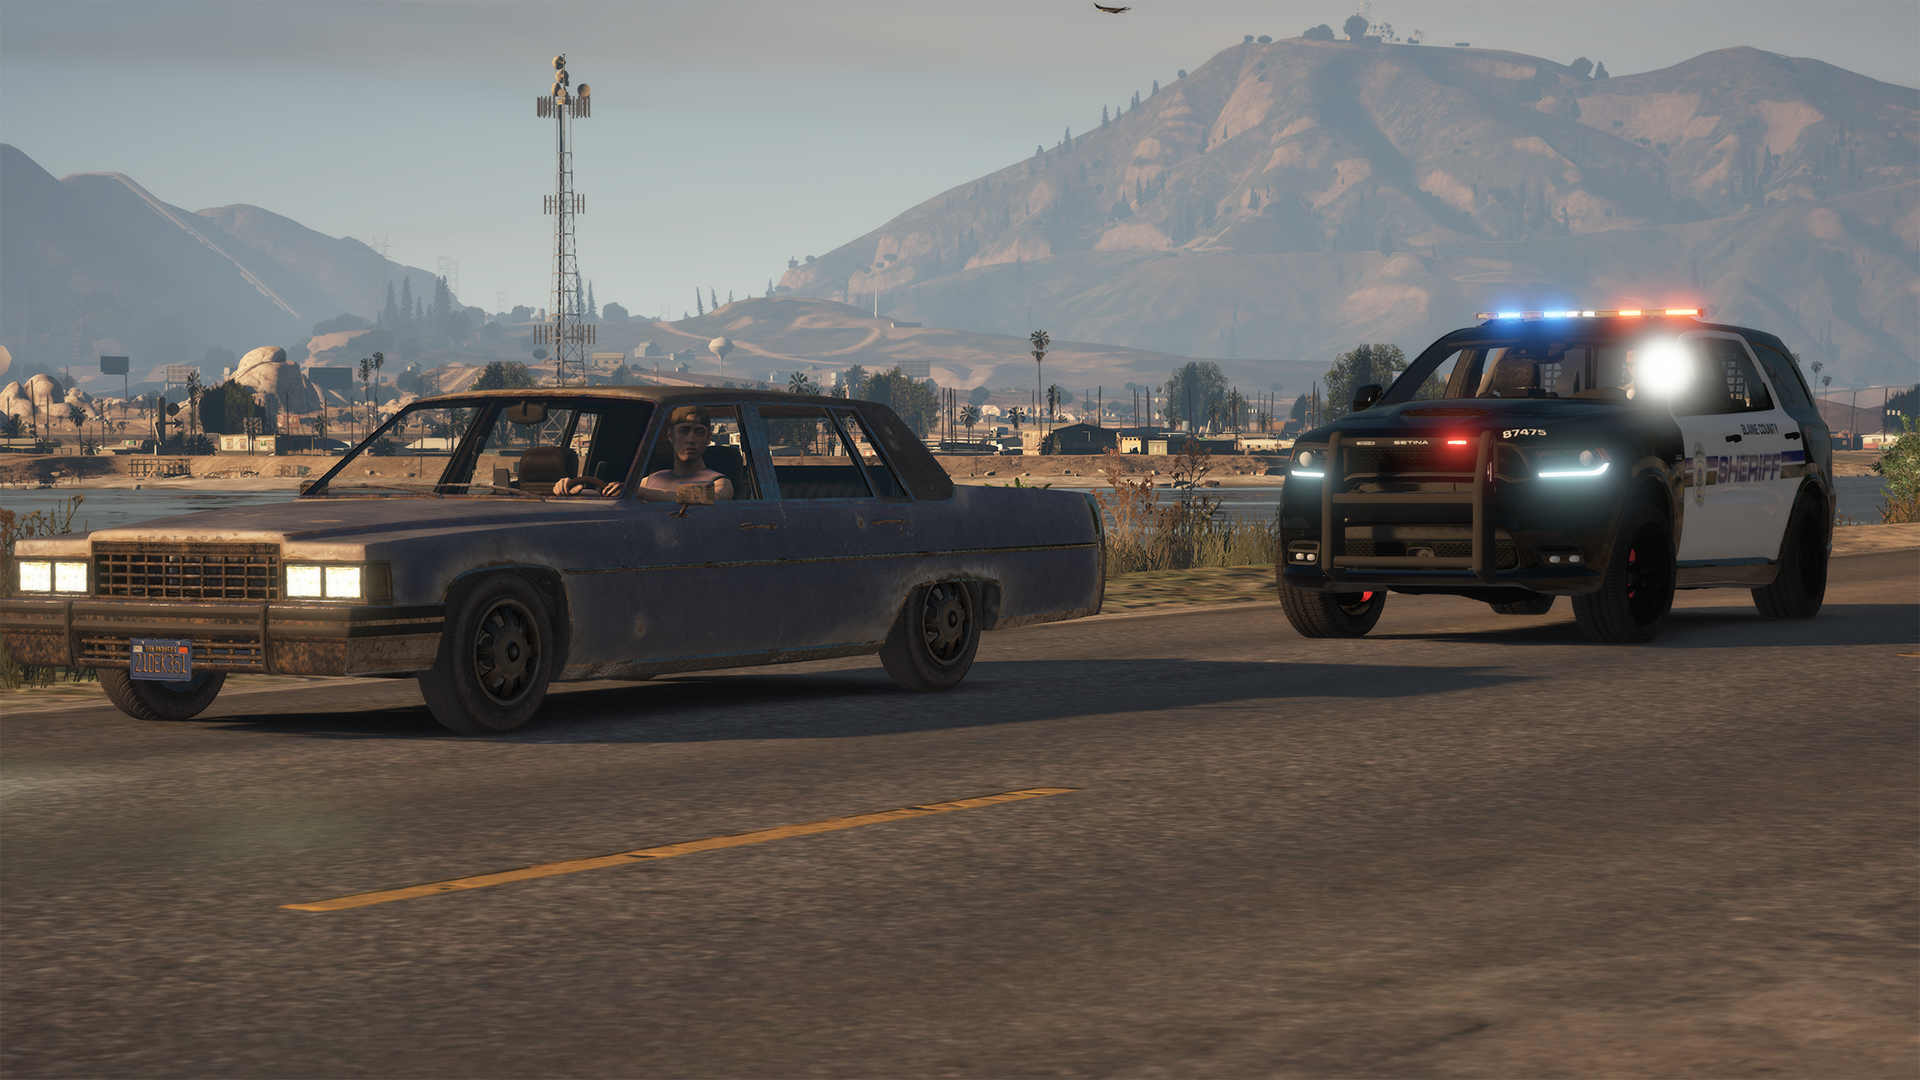 Grand_Theft_Auto_V_7_6_2020_1_07_06_AM.png.501a3d3cf6a2e9c17dc7b6f130375fa4.png